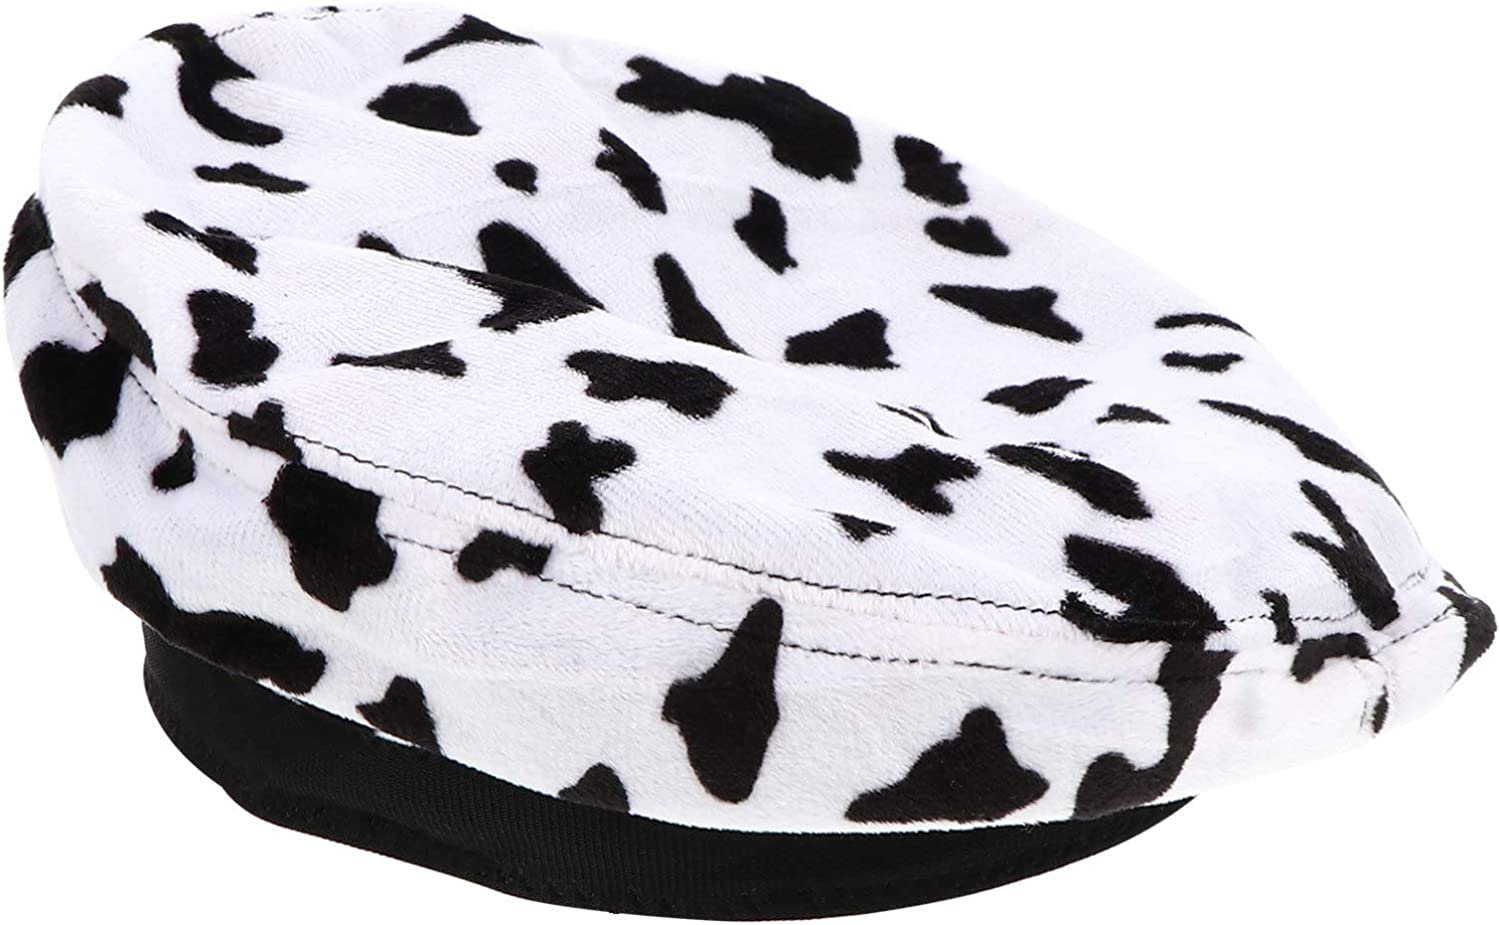 KESYOO Beret Hat Newsboy Cabbie Hat Soft Beret with Zebra Cow Print Gifts for Men Women Winter Christmas Birthday Party